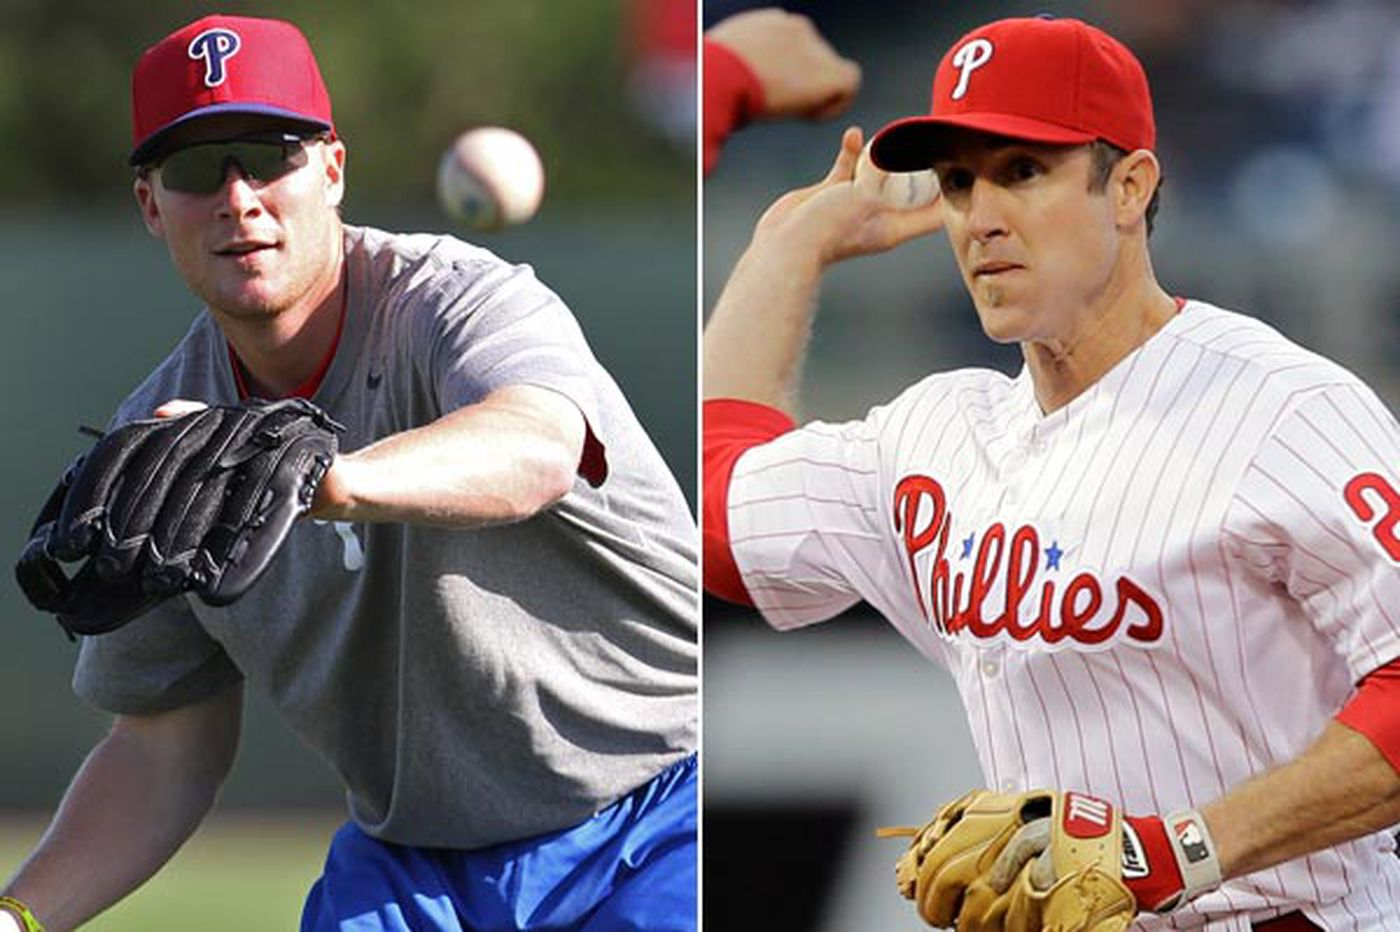 IronPigs' Asche has some Utley in him